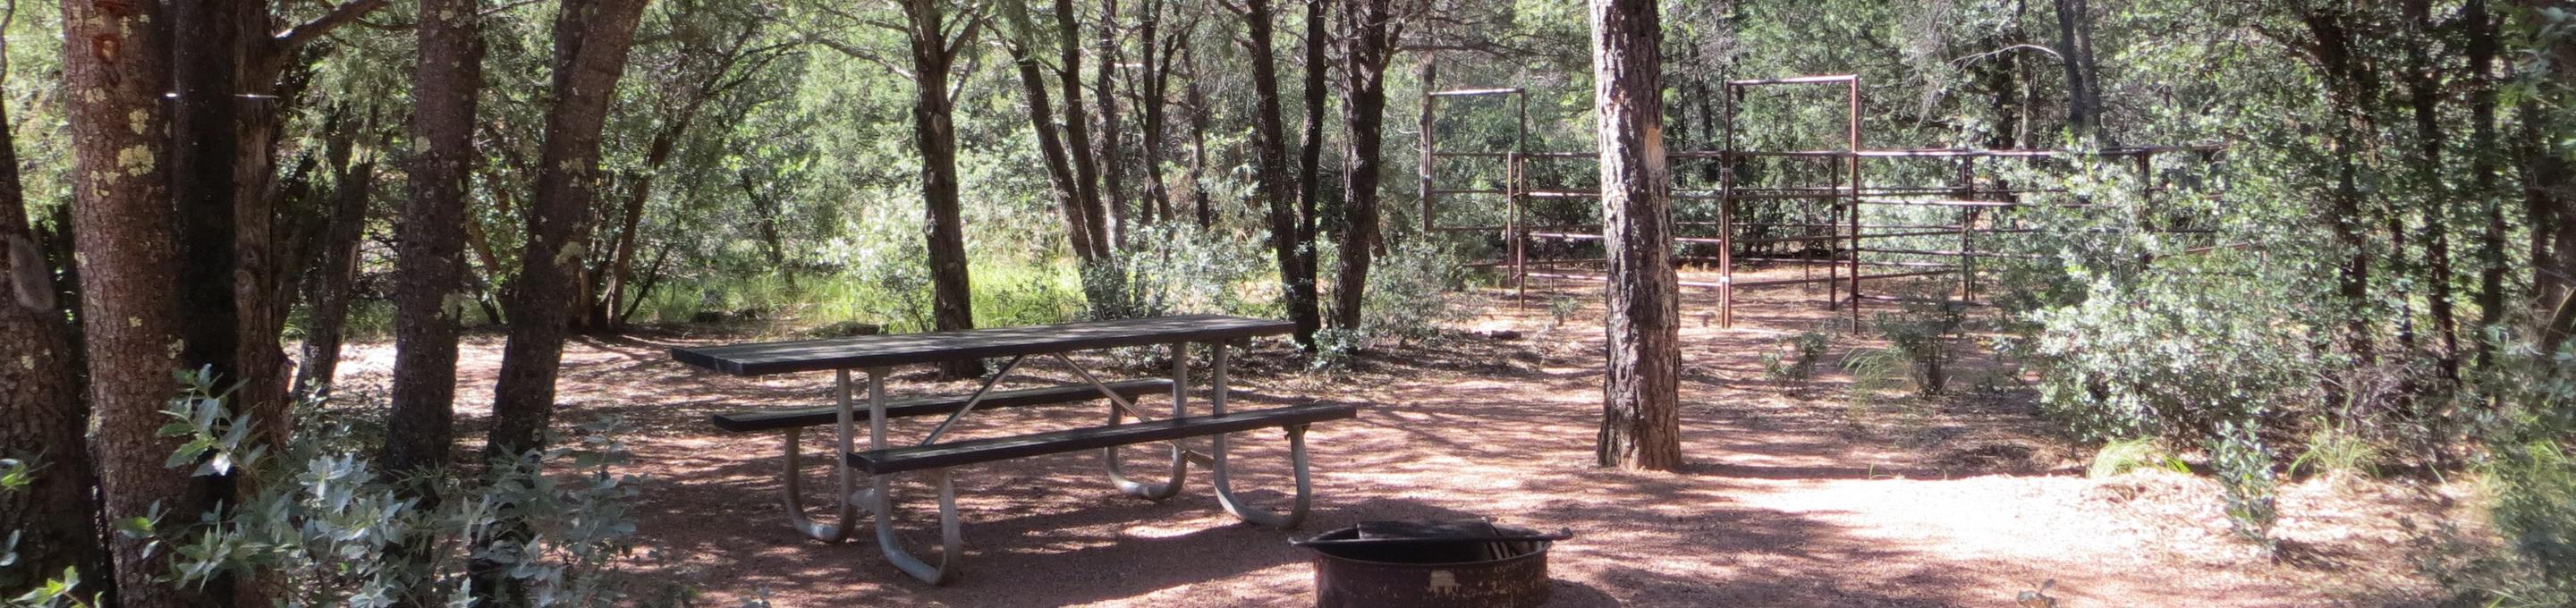 Houston Mesa, Horse Camp site #07 featuring picnic area with table, fire pit, and horse corral.